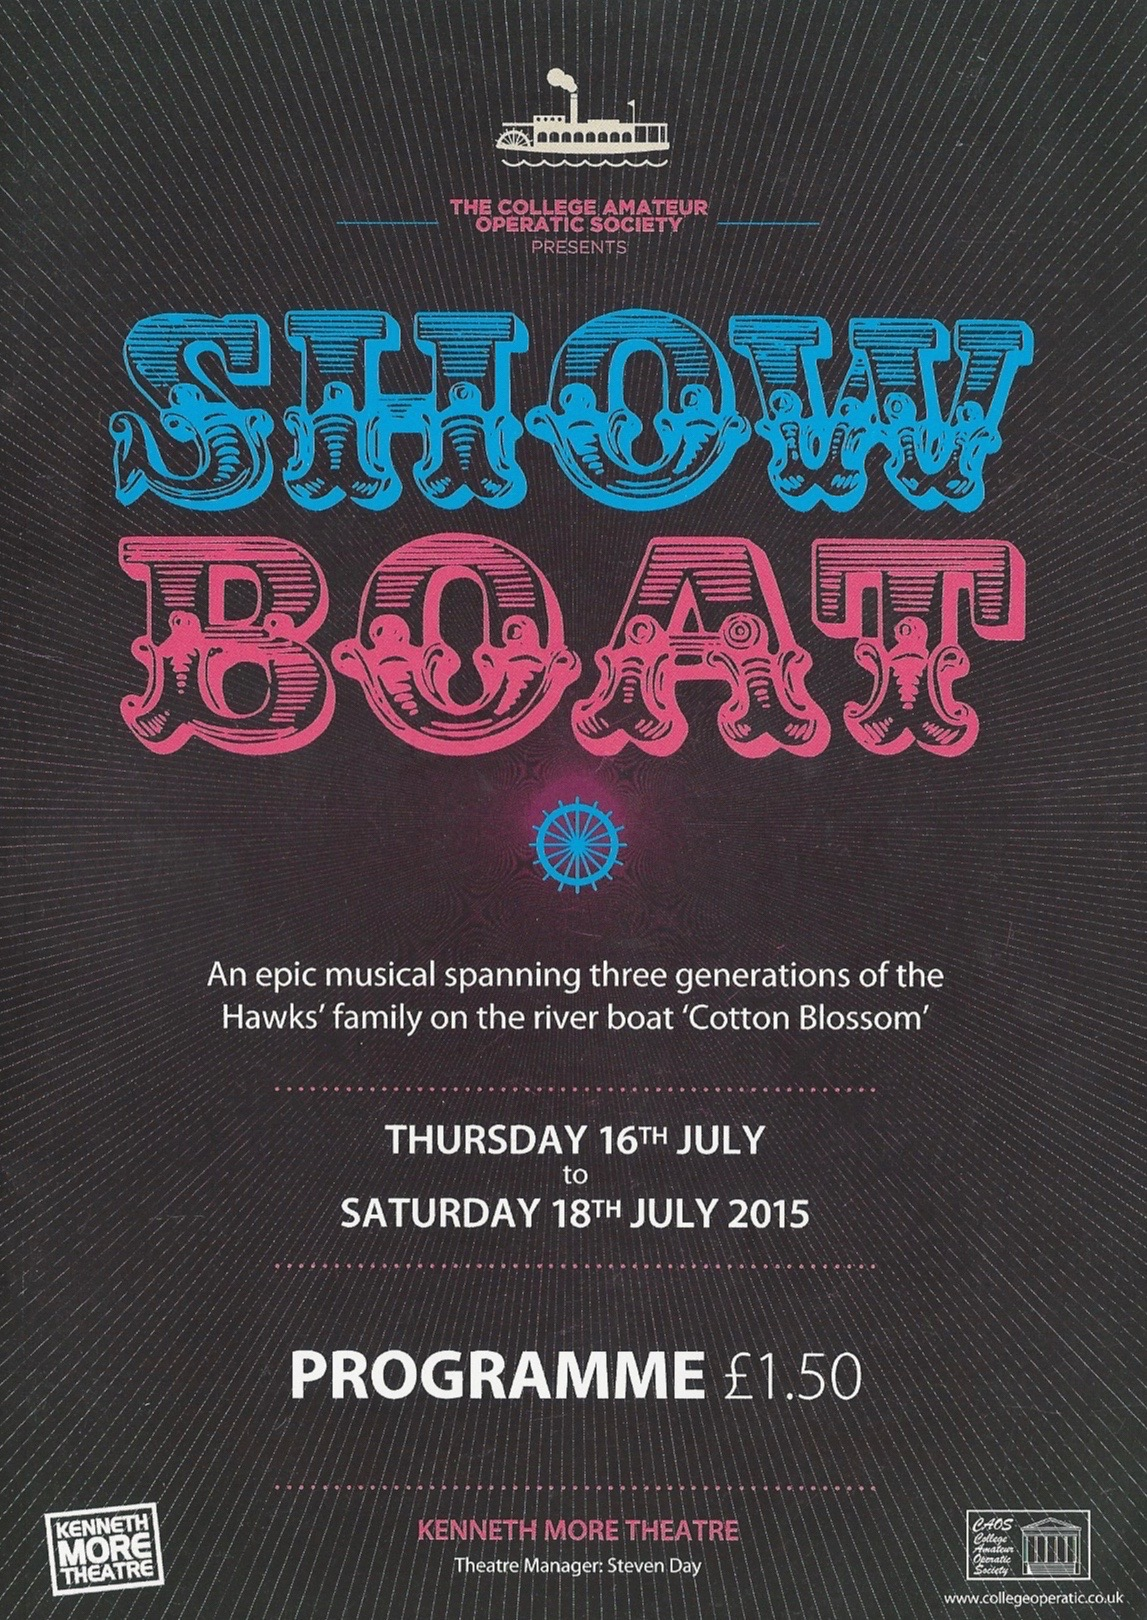 showboatprogram1